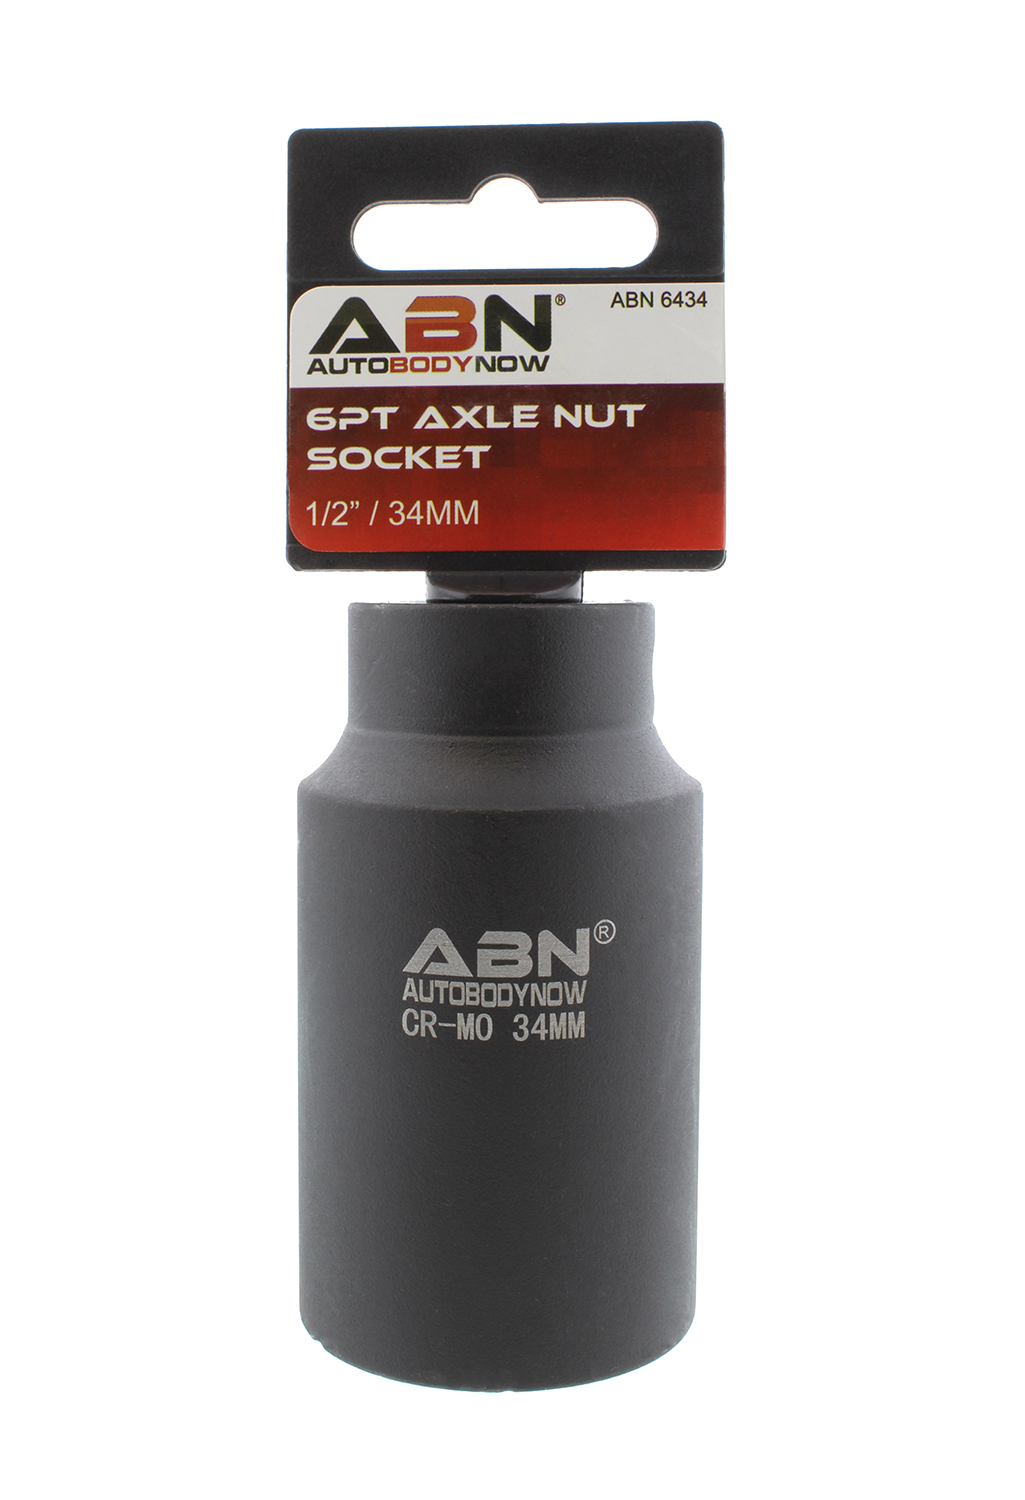 "ABN Axle Nut Socket 1 2"" Inch Drive Universal for 6pt Axle Nut on Vehicles by Auto Body Now"